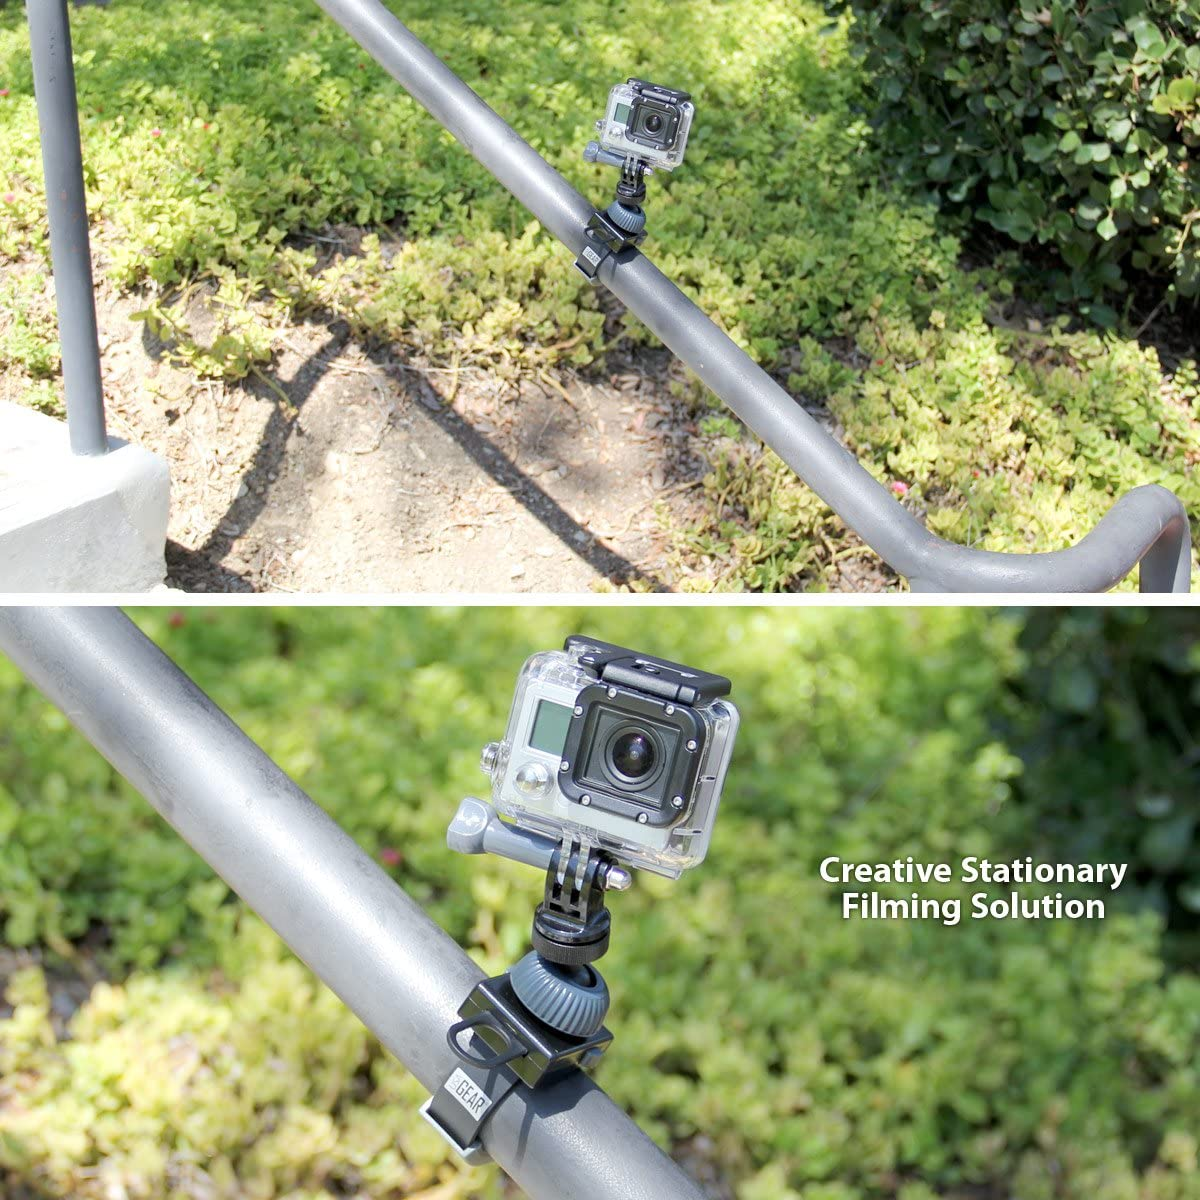 Articulating Ball Head /& Quick-Release Plate /& Garmin VIRB Ultra 30 with Bendable Wrapping Legs Compatible with GoPro HERO 6 Black USA Gear Flexible Tripod for Action Camera